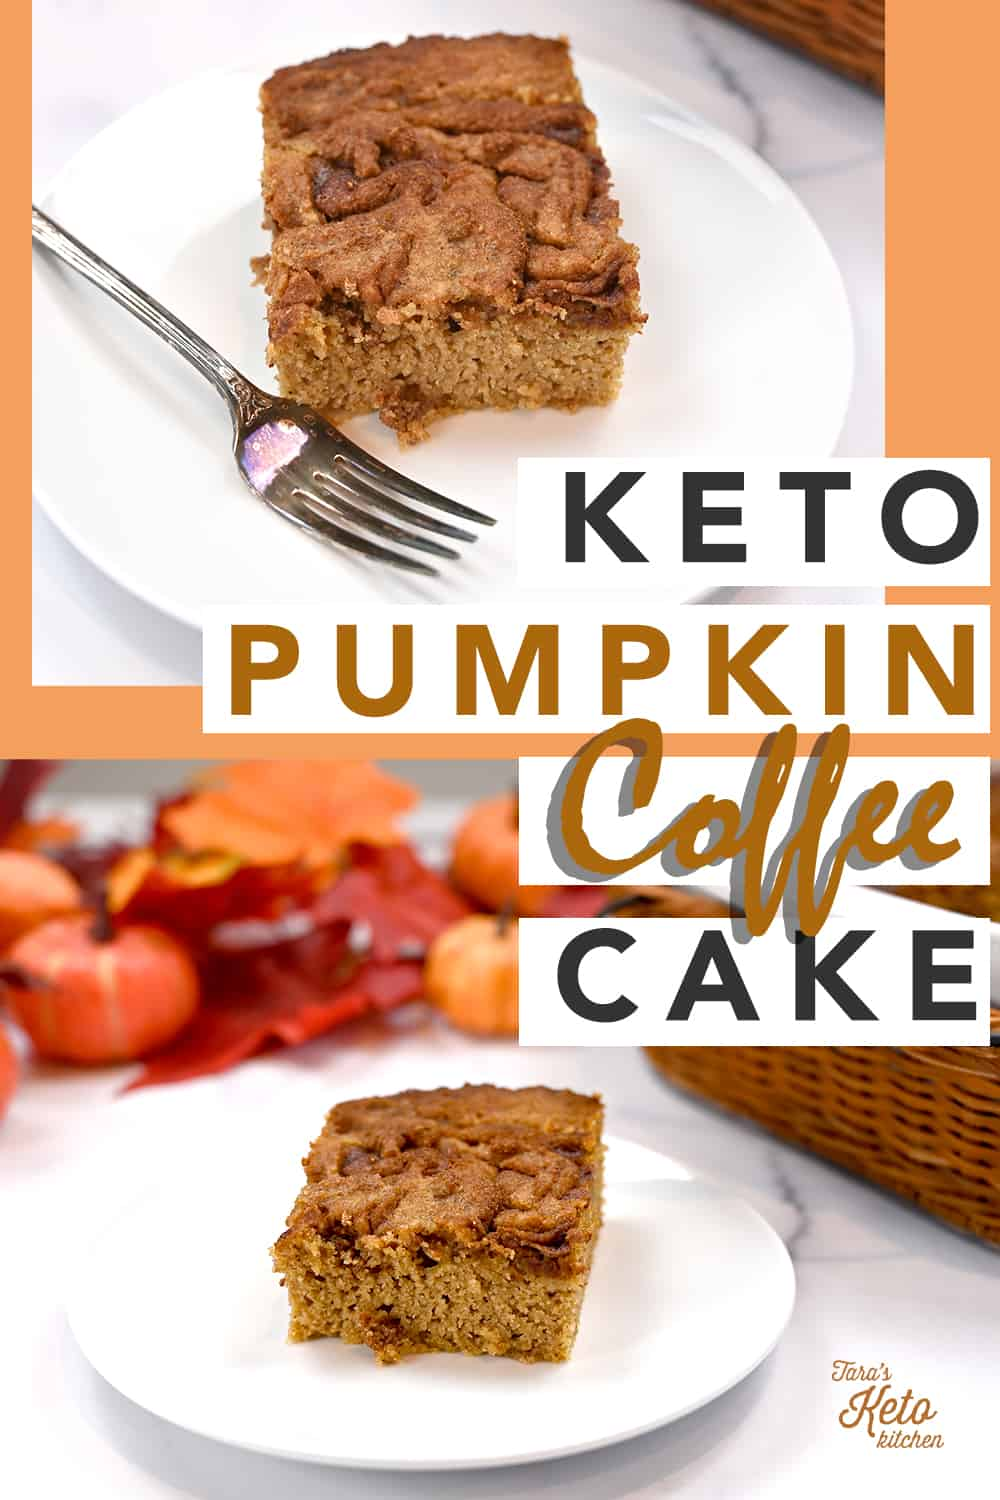 keto pumpkin coffee cake pinterest image with a piece on a white plate and a fork beside it